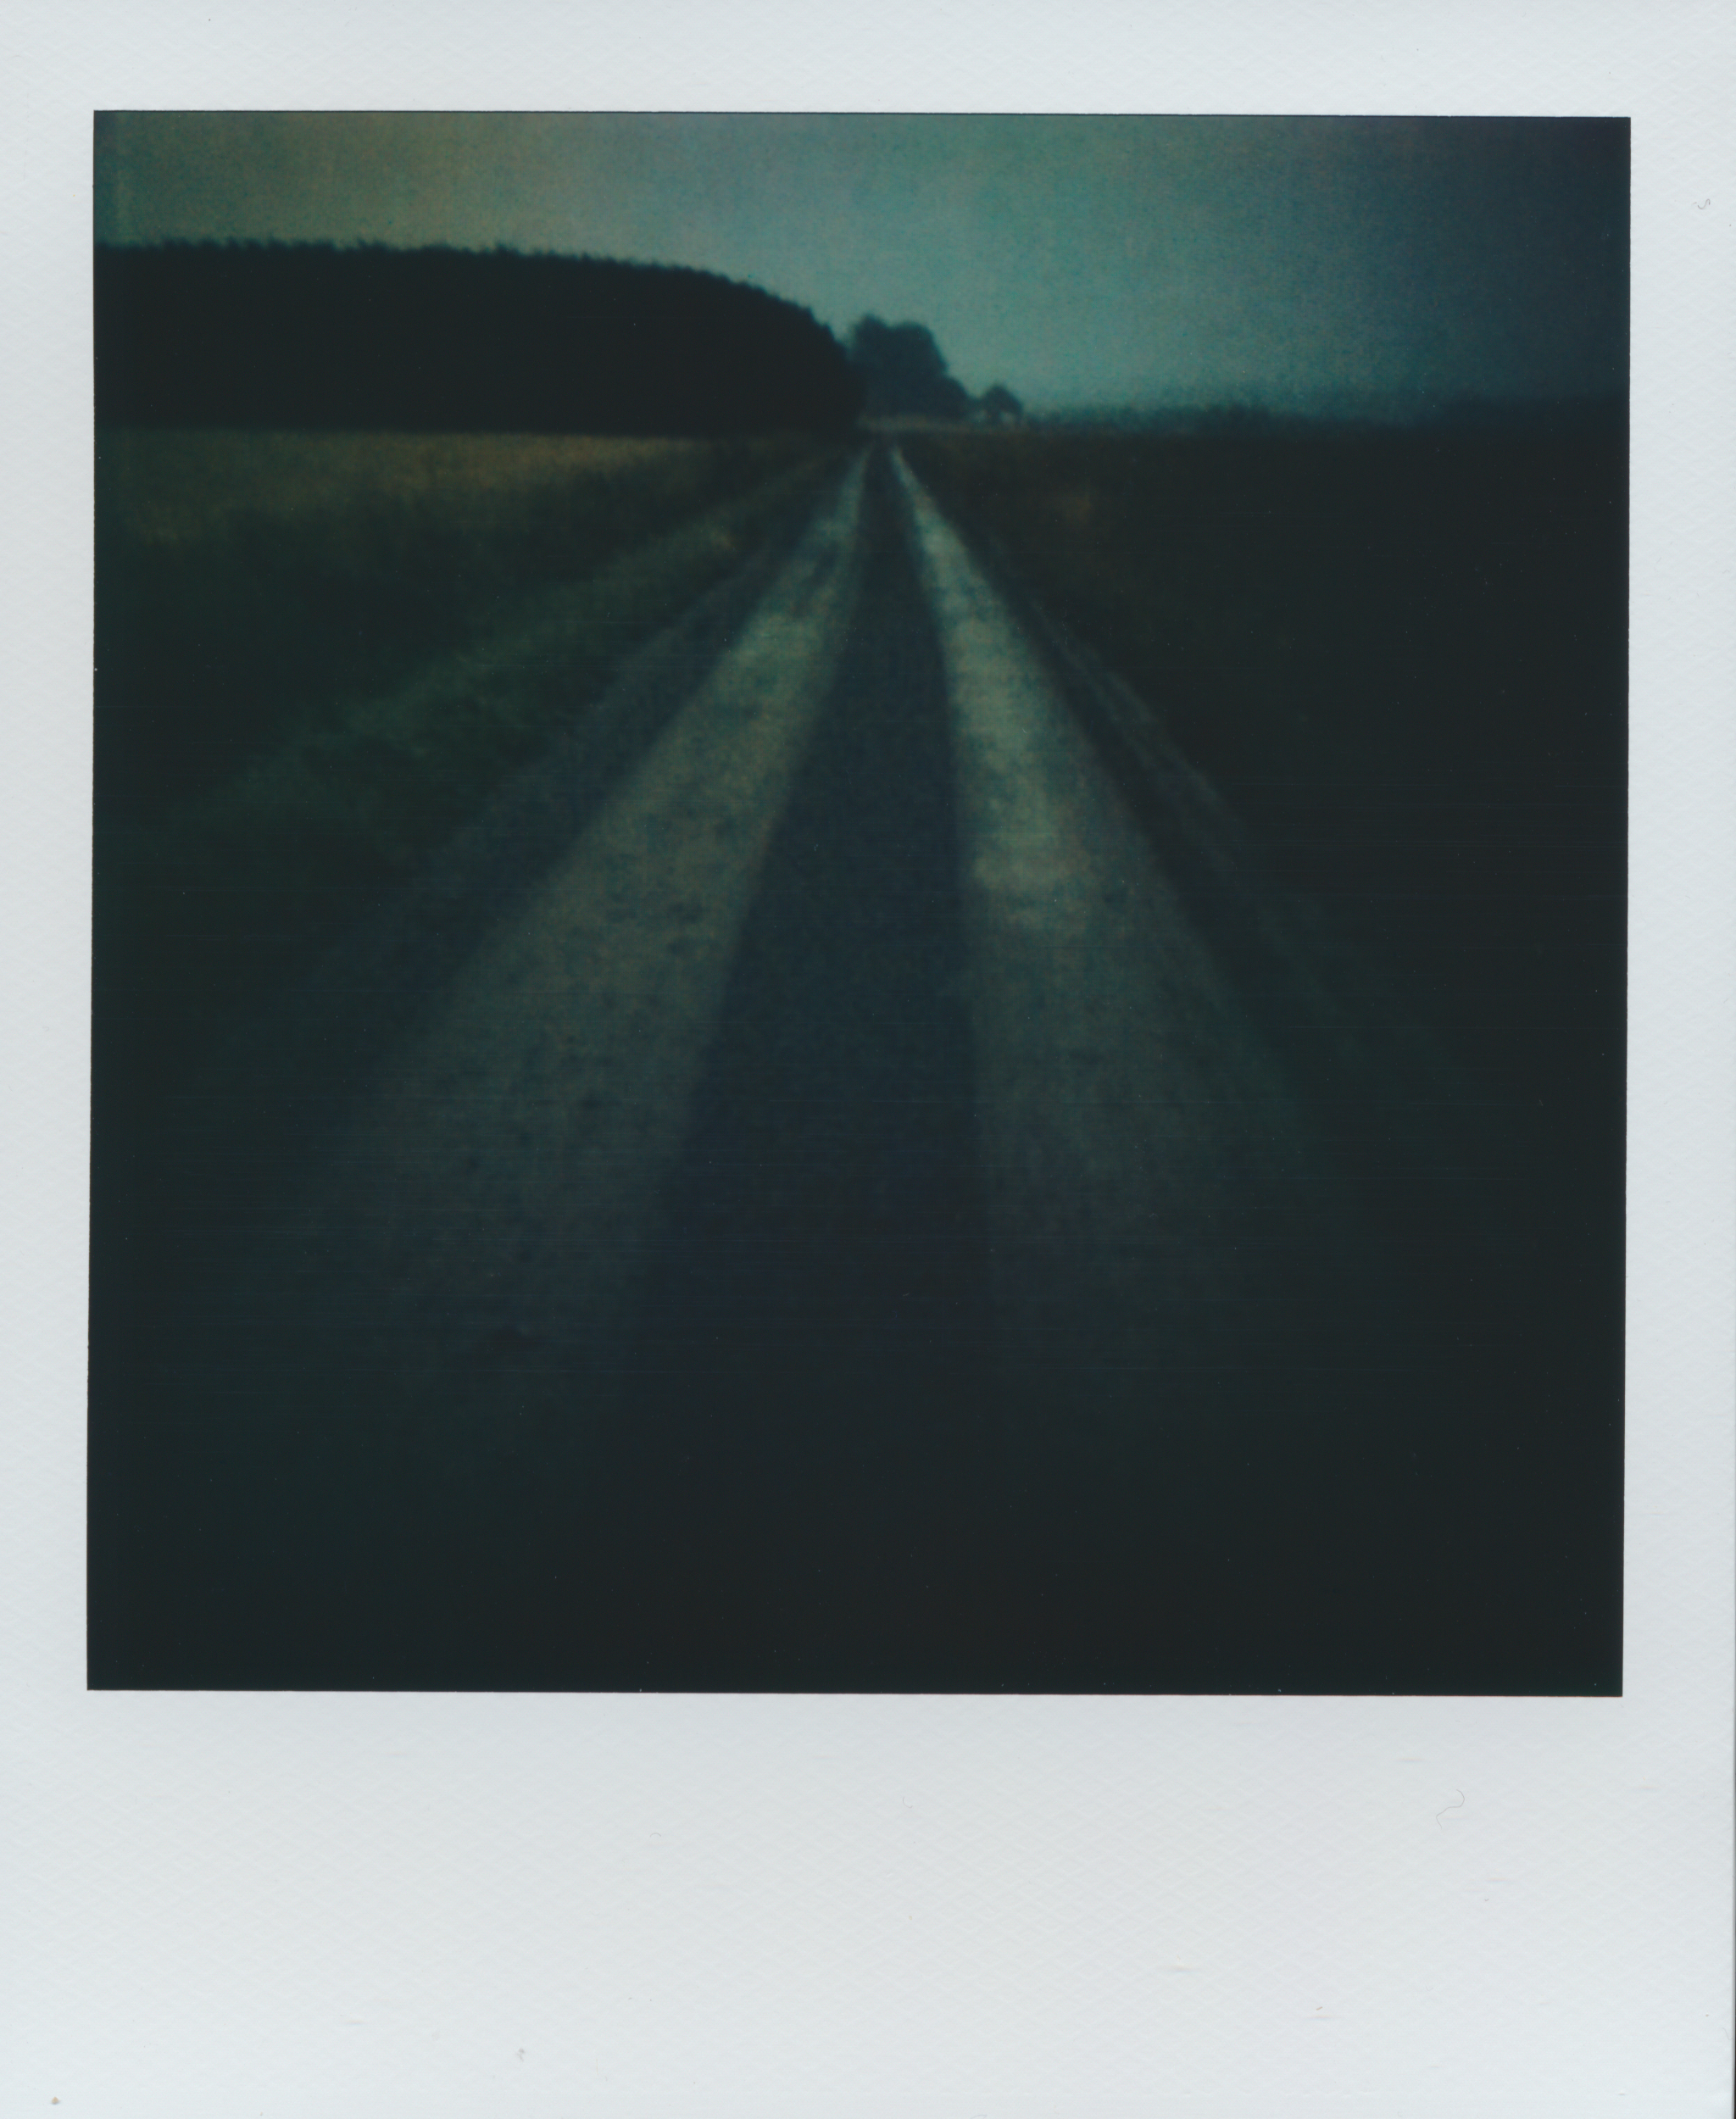 Åby | Impossible Project Instant Lab | Impossible Project I-Type Film | Per Forsström